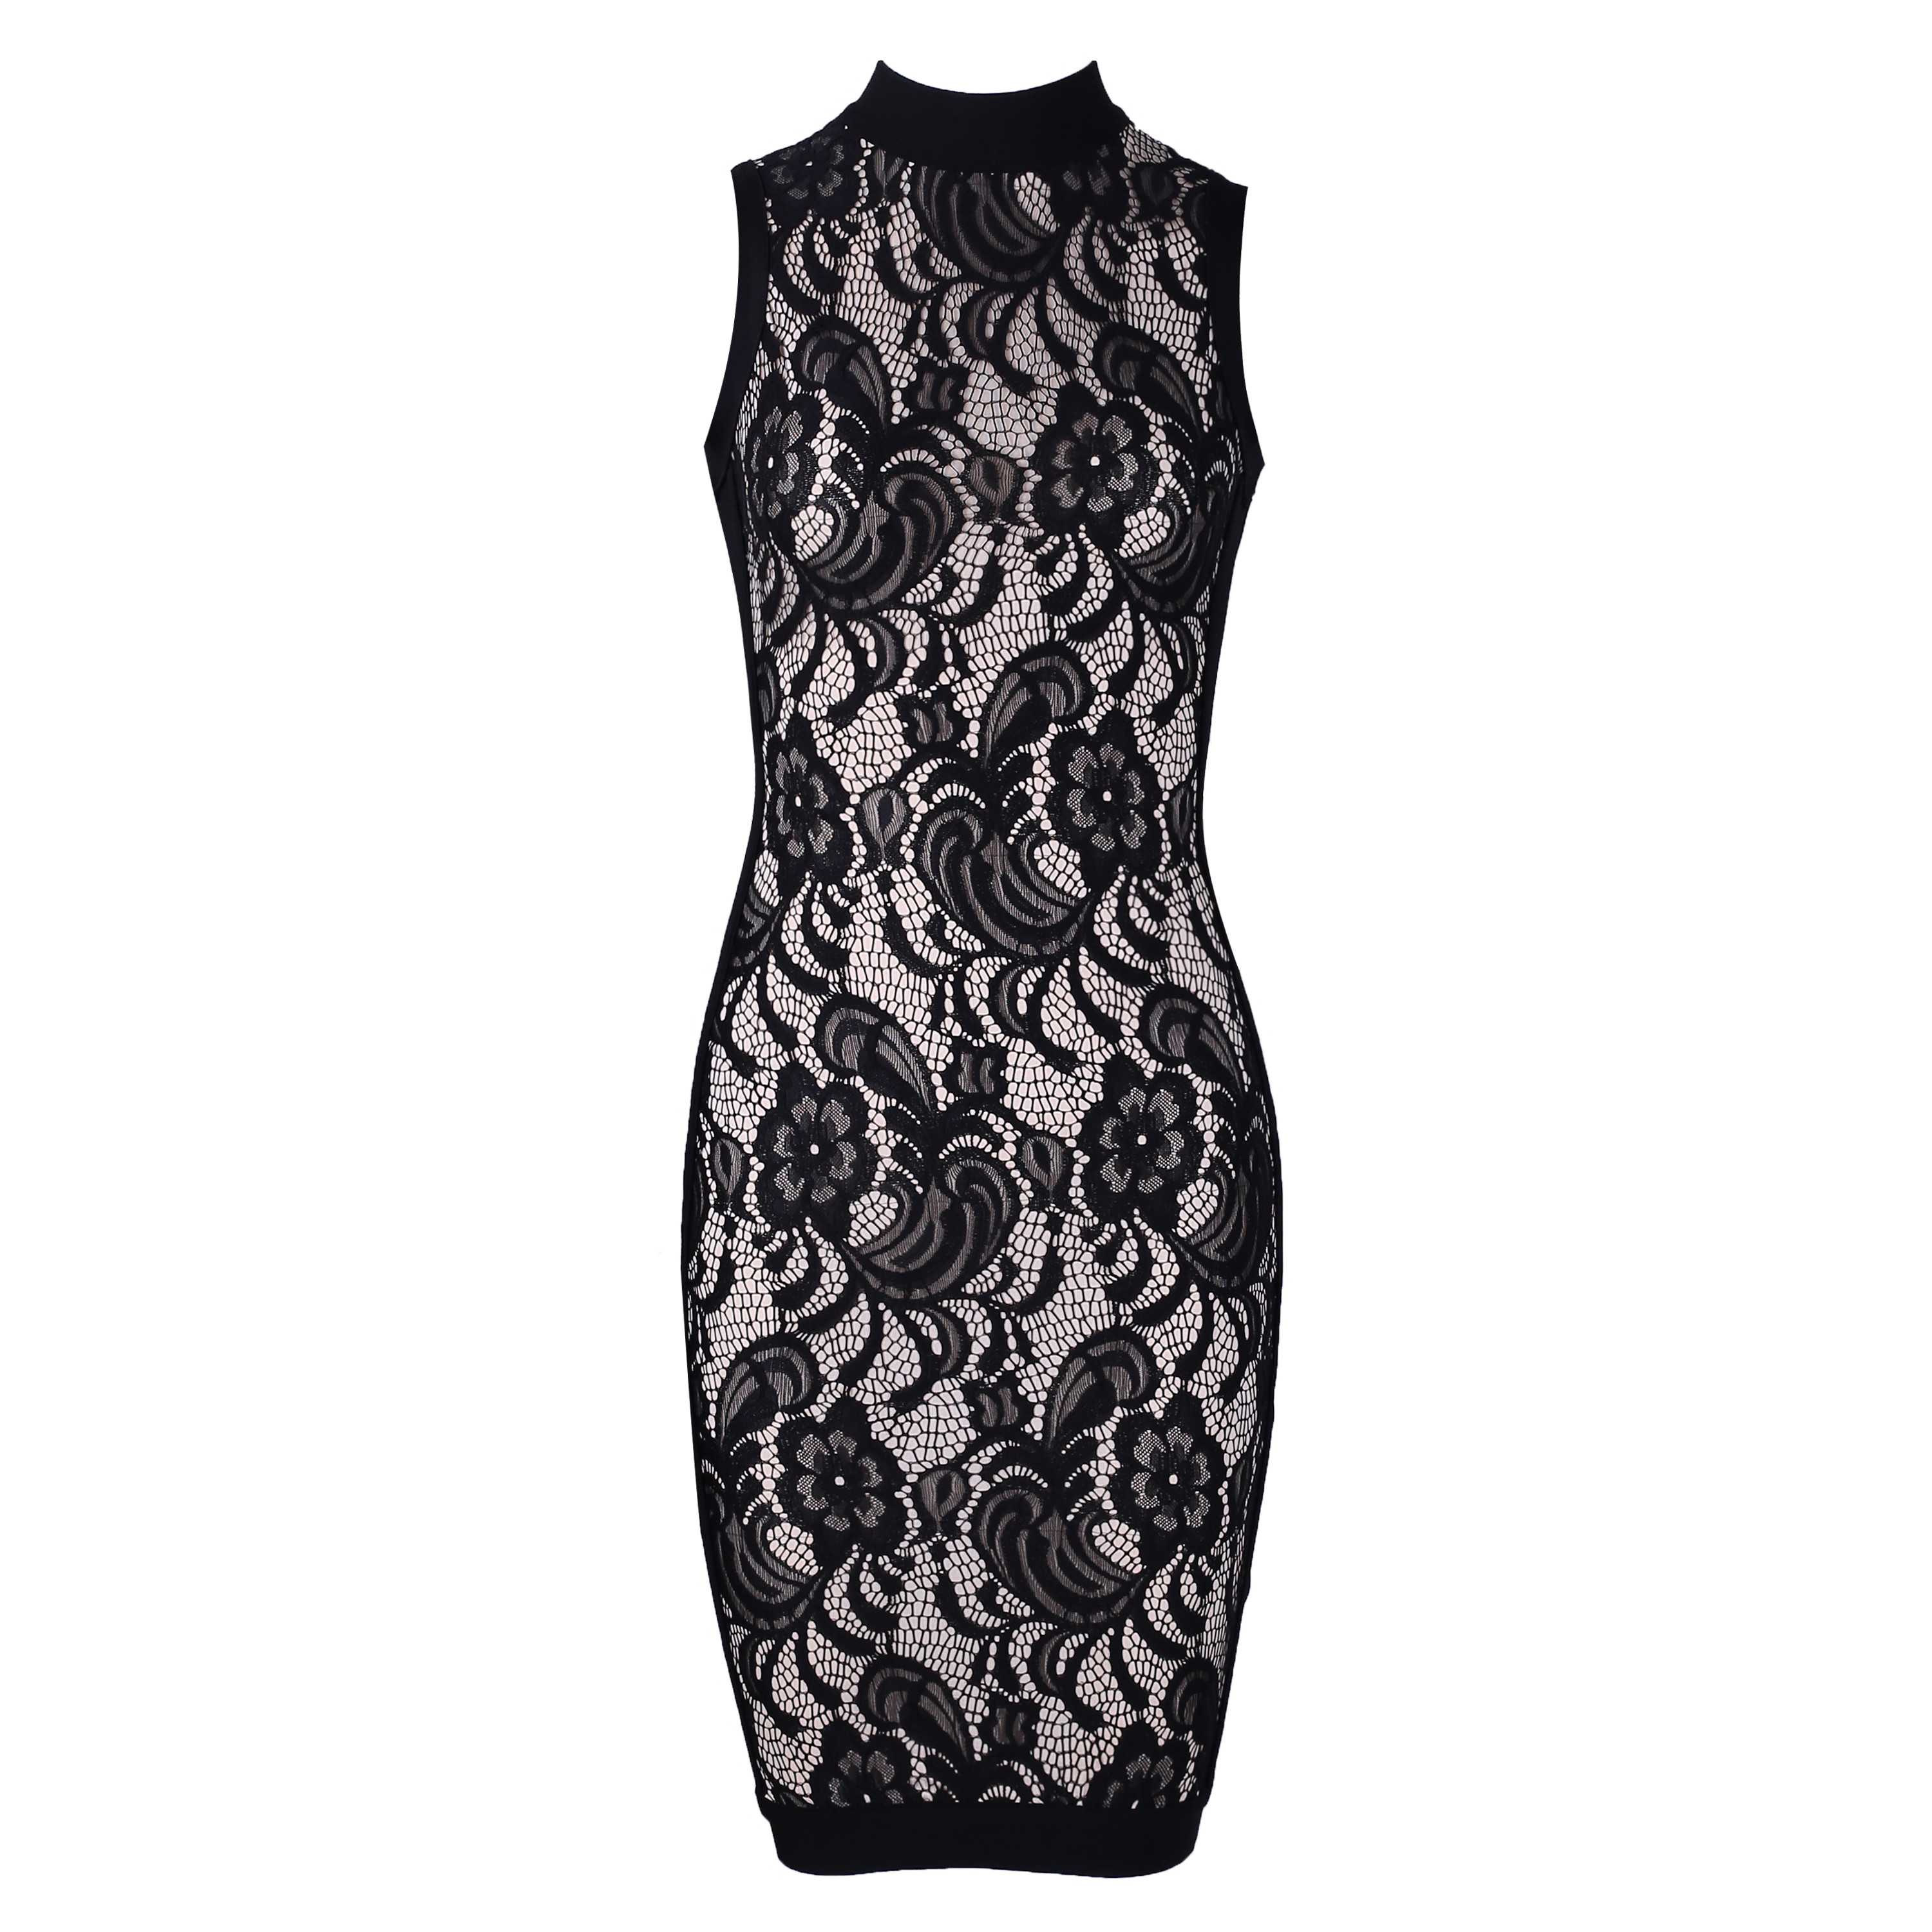 Rayon - Black Round Neck Sleeveless Over Knee Lace Fashion Bodycon Dress H0072-Black